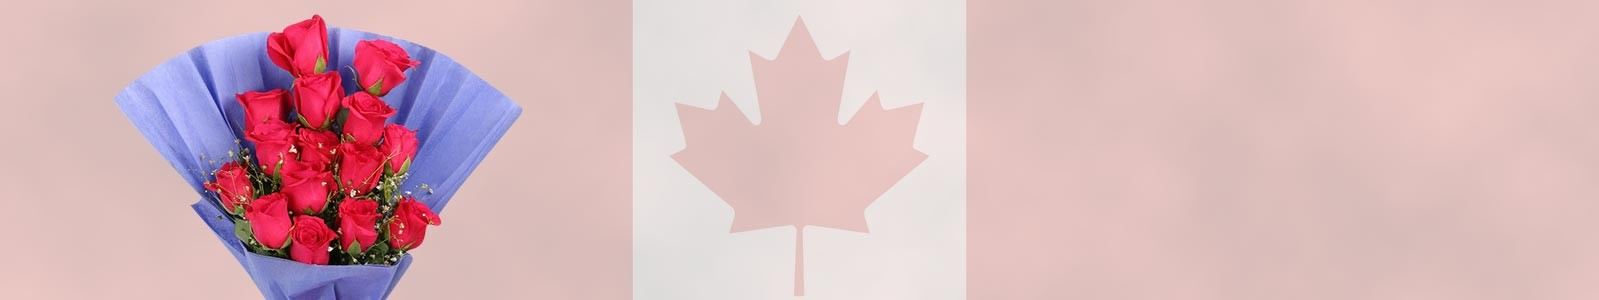 Send Flowers to Canada Online